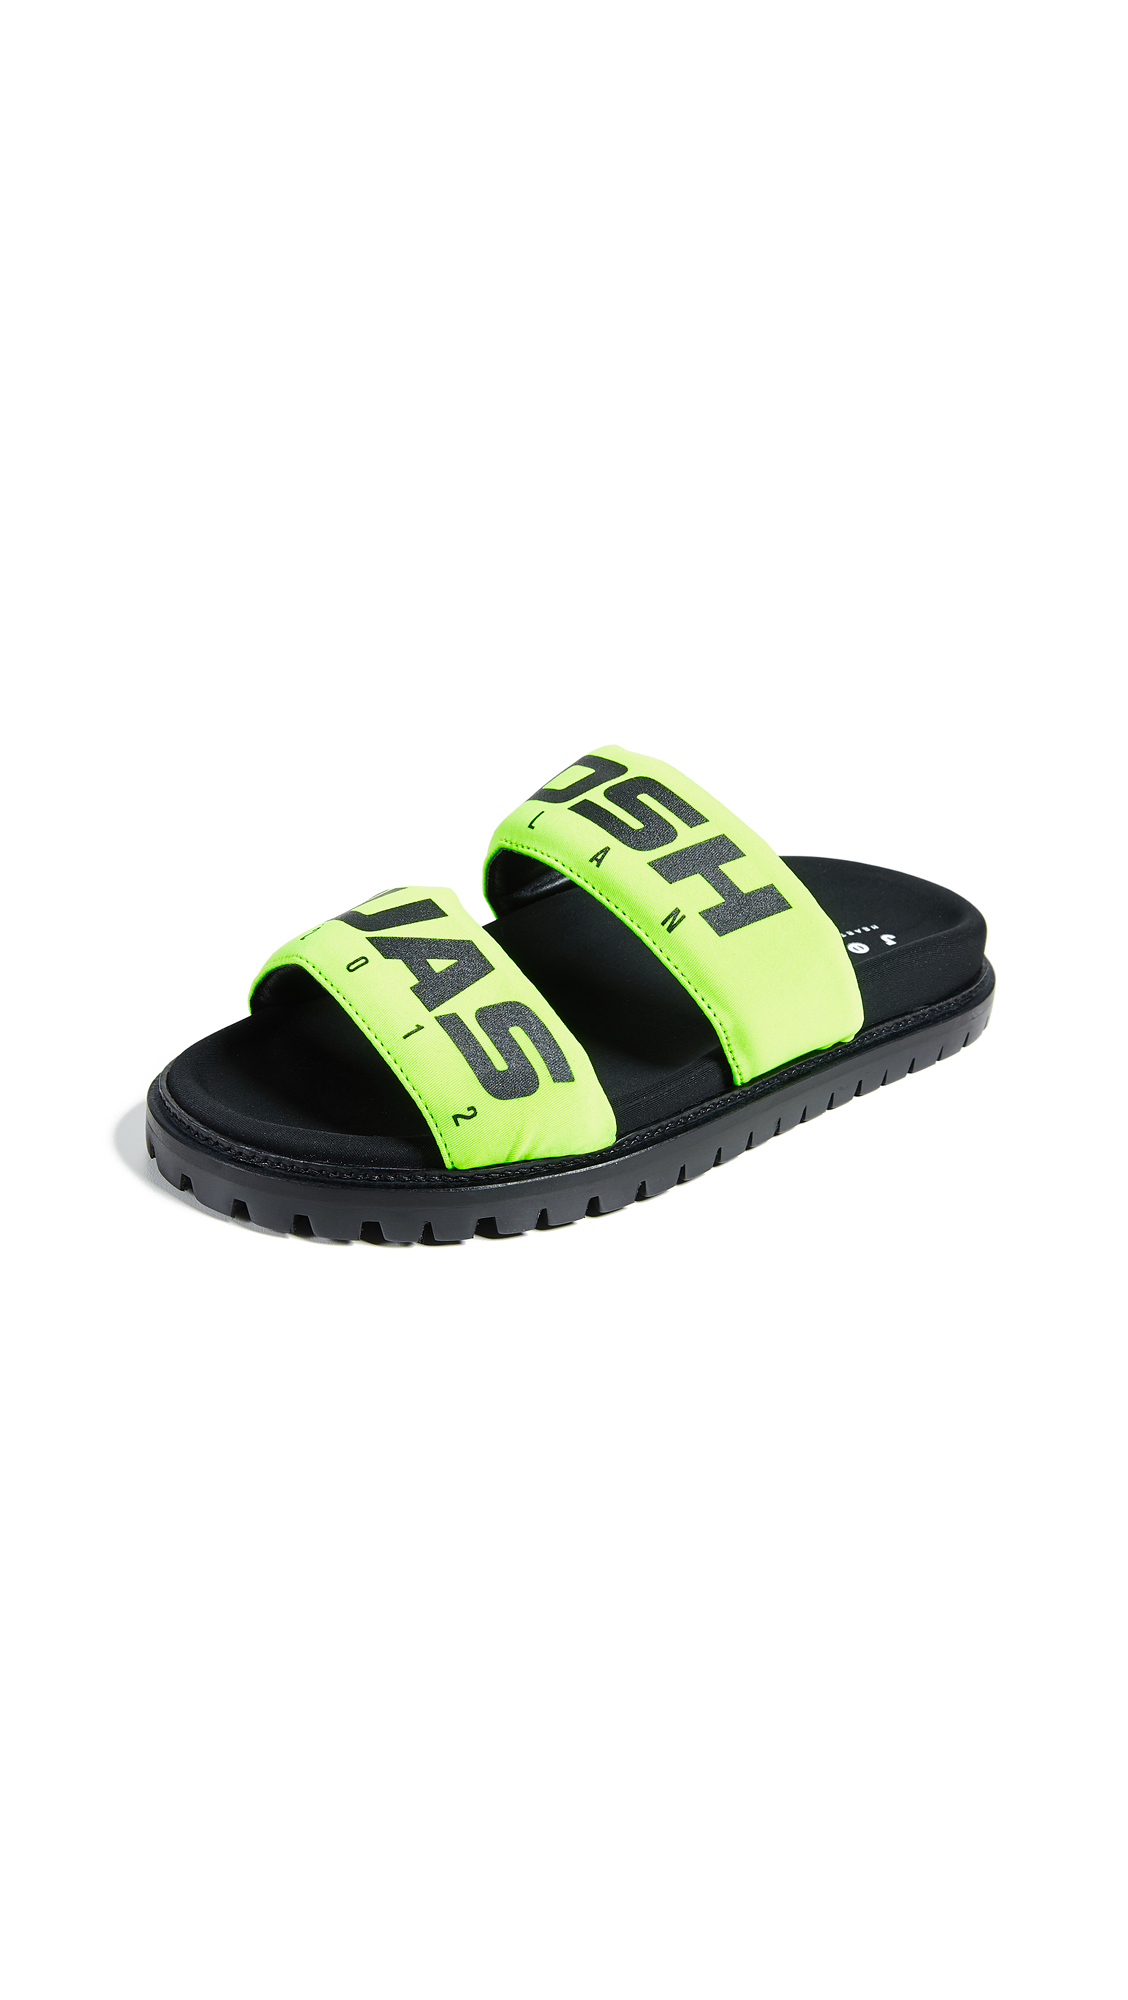 Joshua Sanders Racing Slide Sandals - Yellow Racing